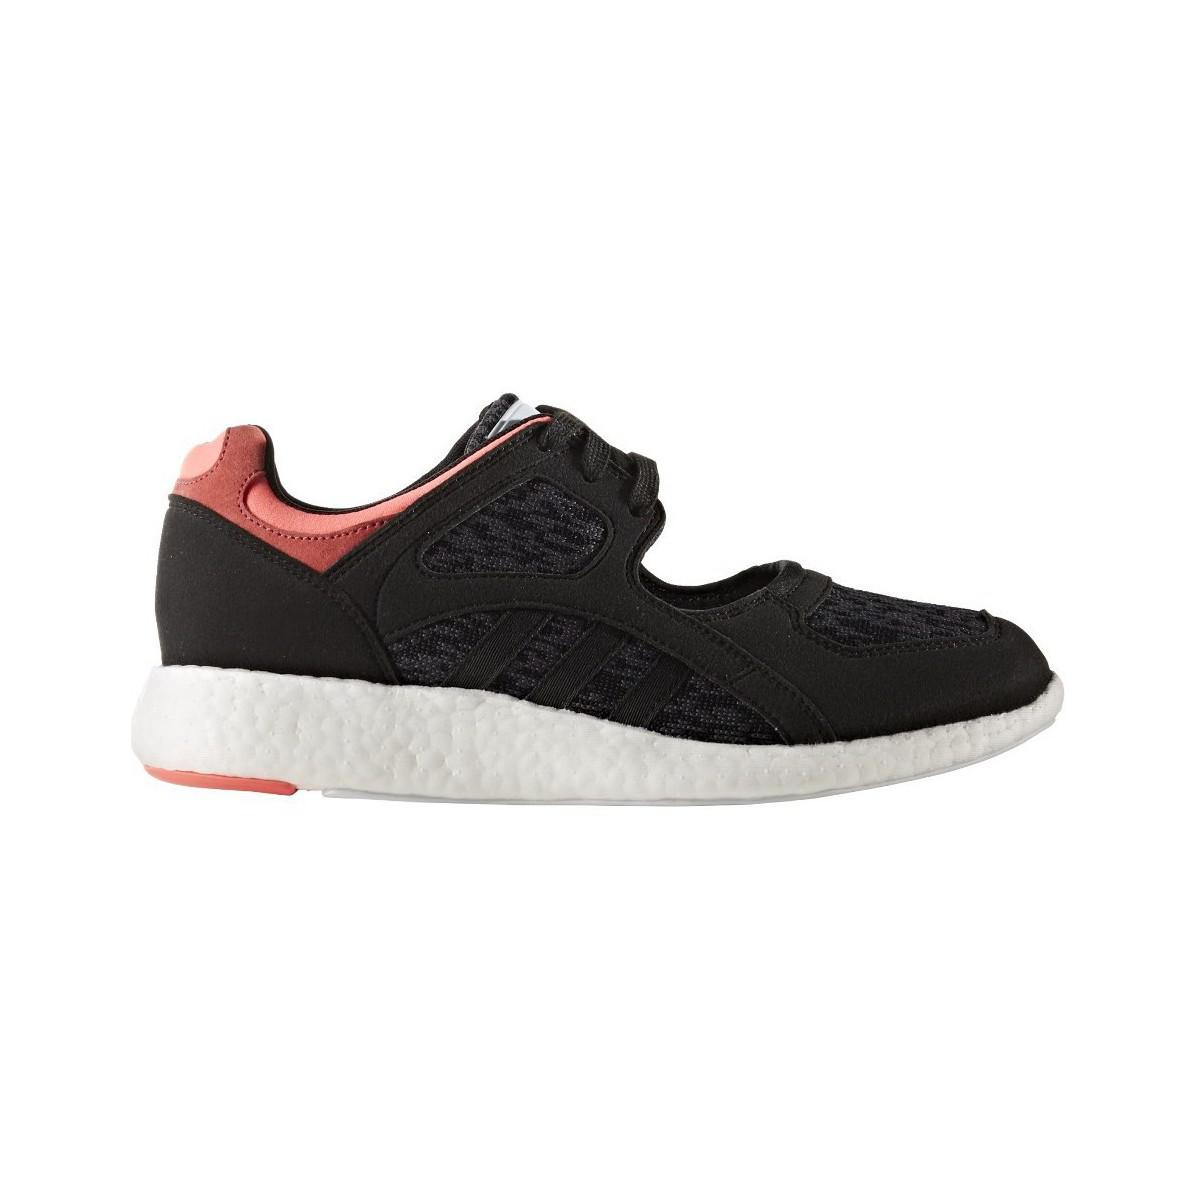 half off 78173 15e3c adidas. Eqt Racing 9116 Black Womens Shoes (trainers) In White